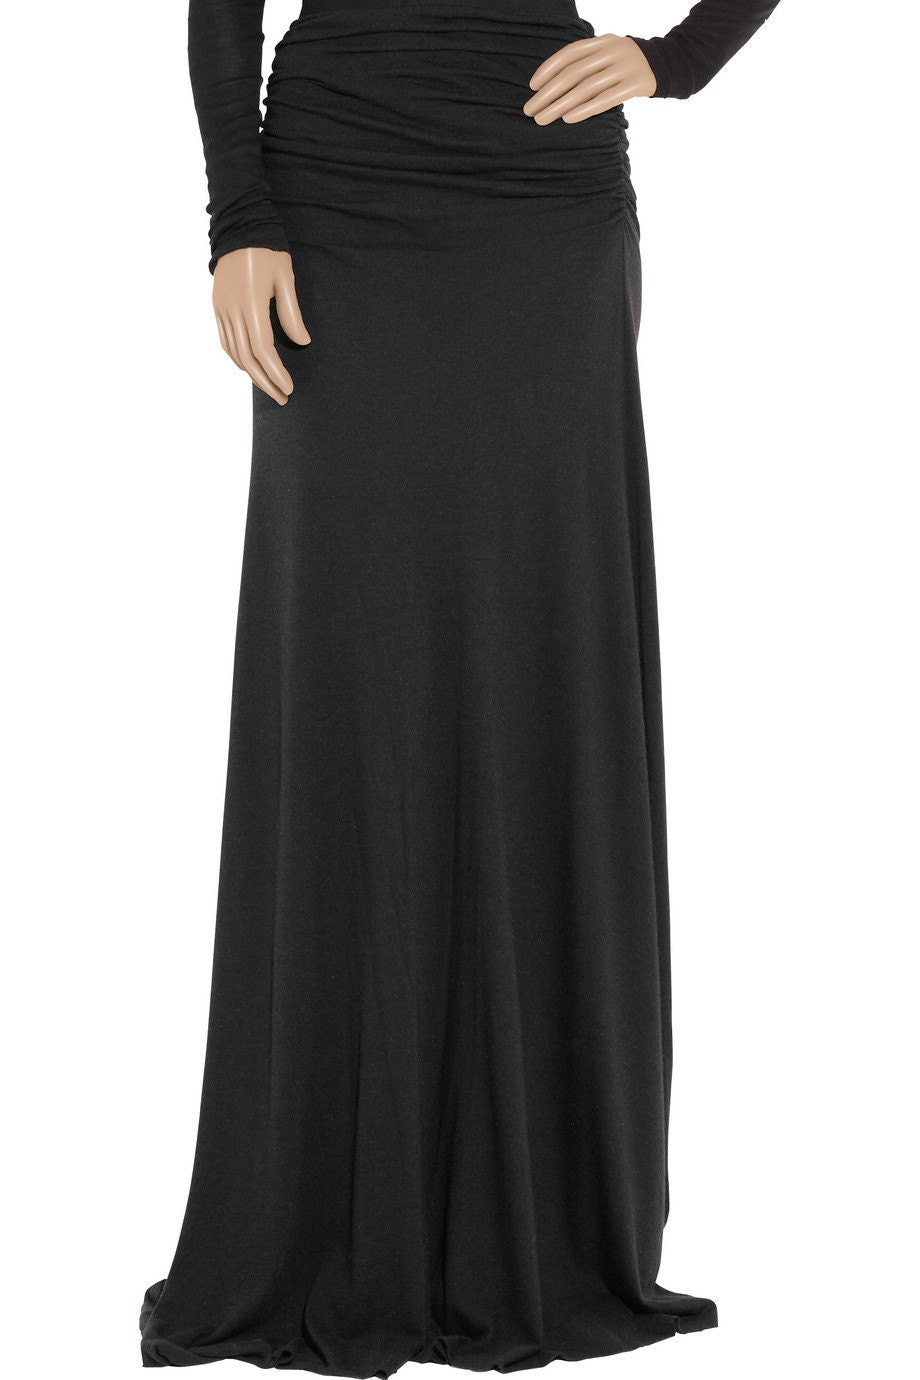 black shirred maxi skirt skirt jersey by